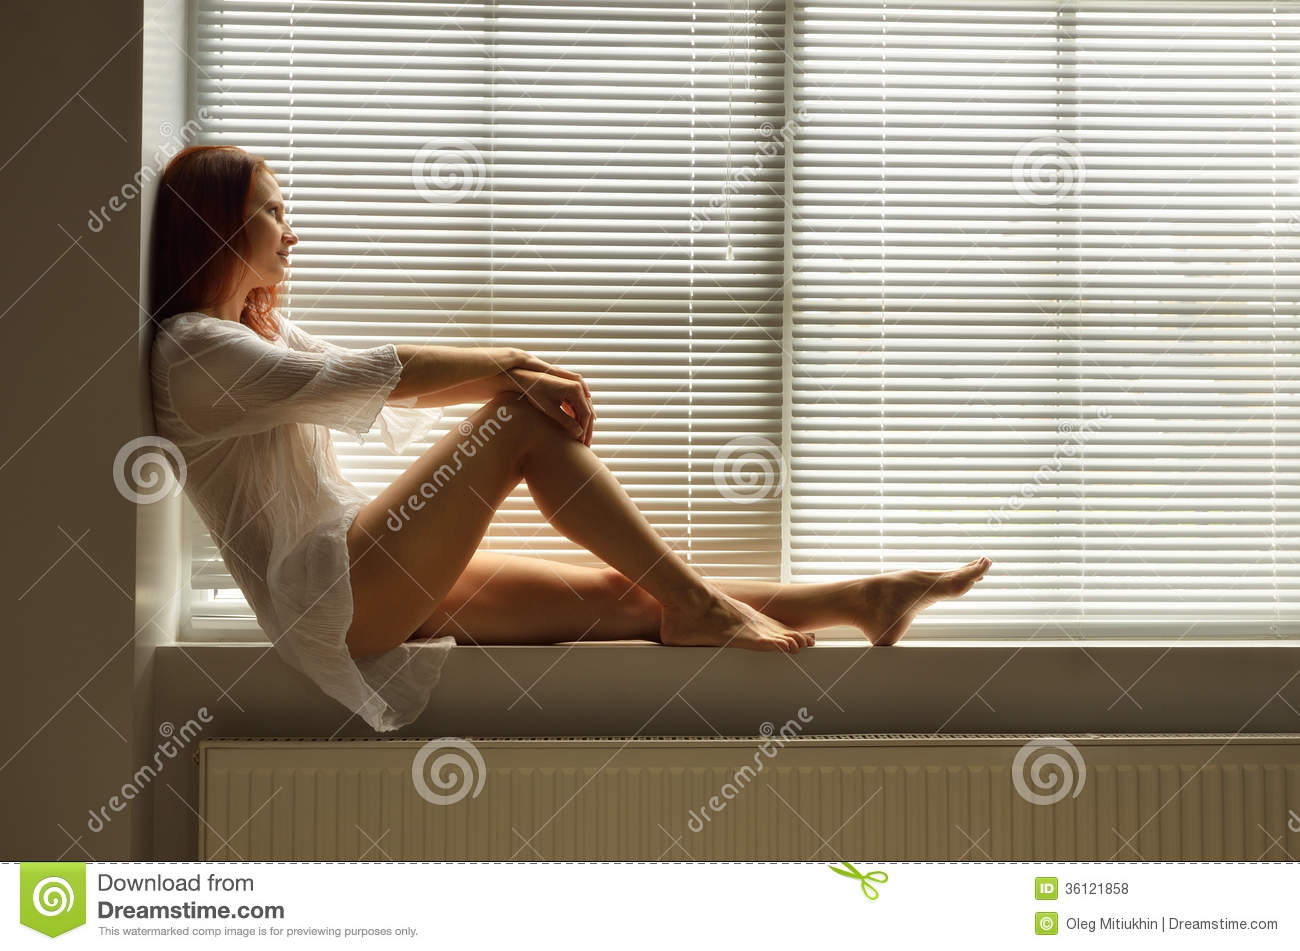 A woman on the windowsill at home